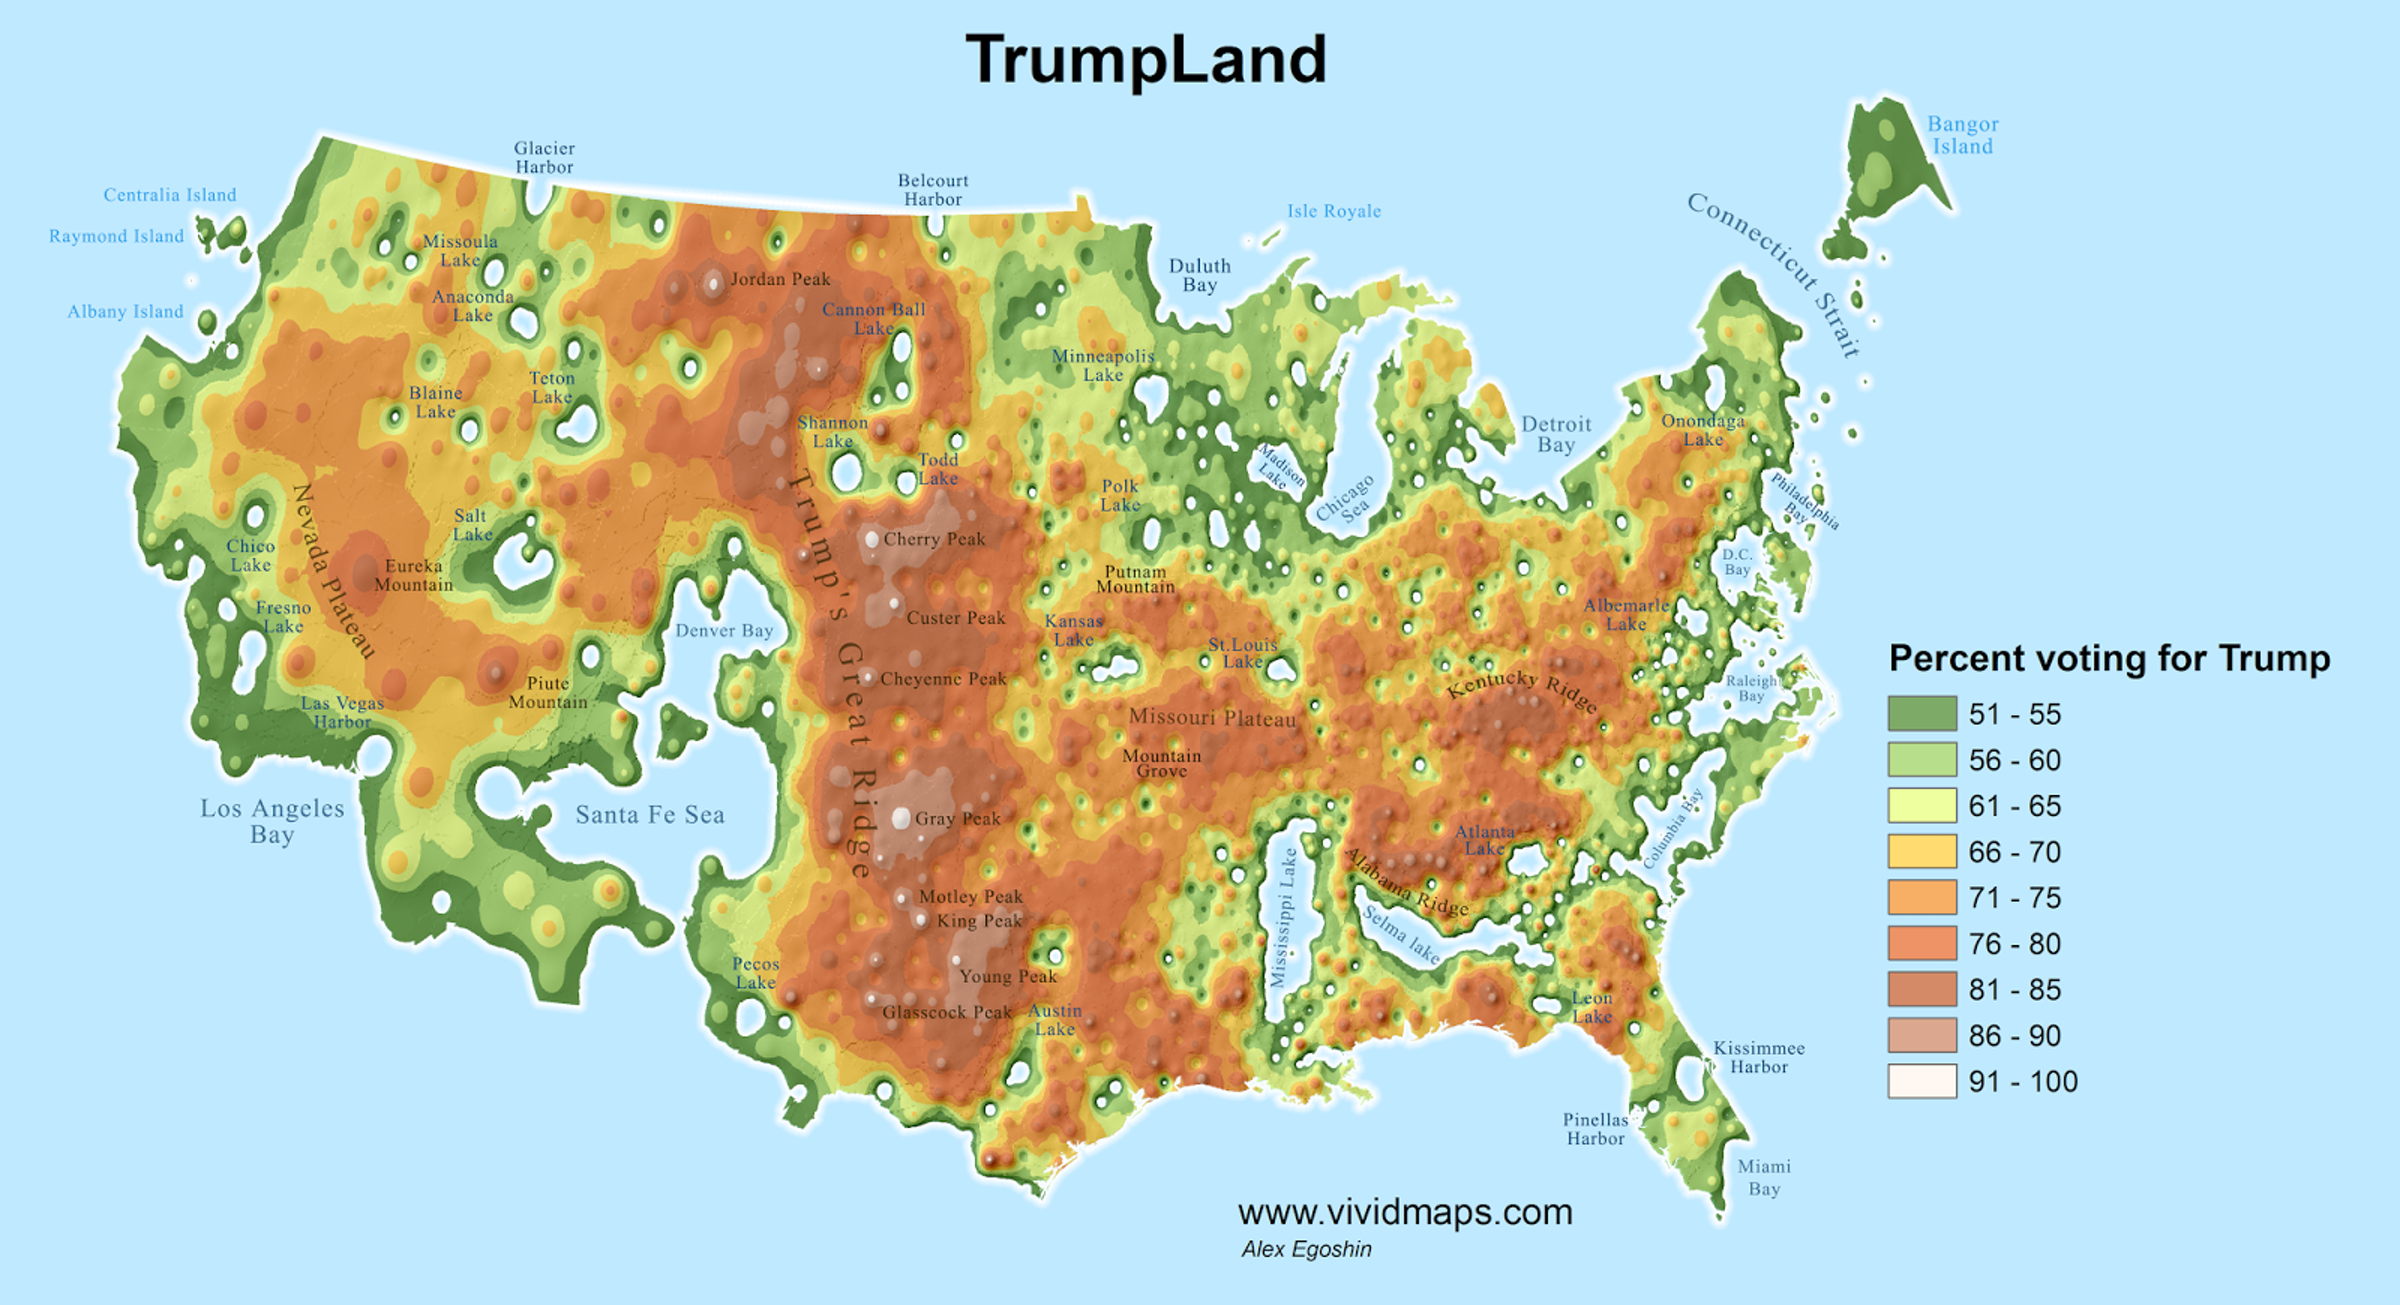 That's a lot of the country.